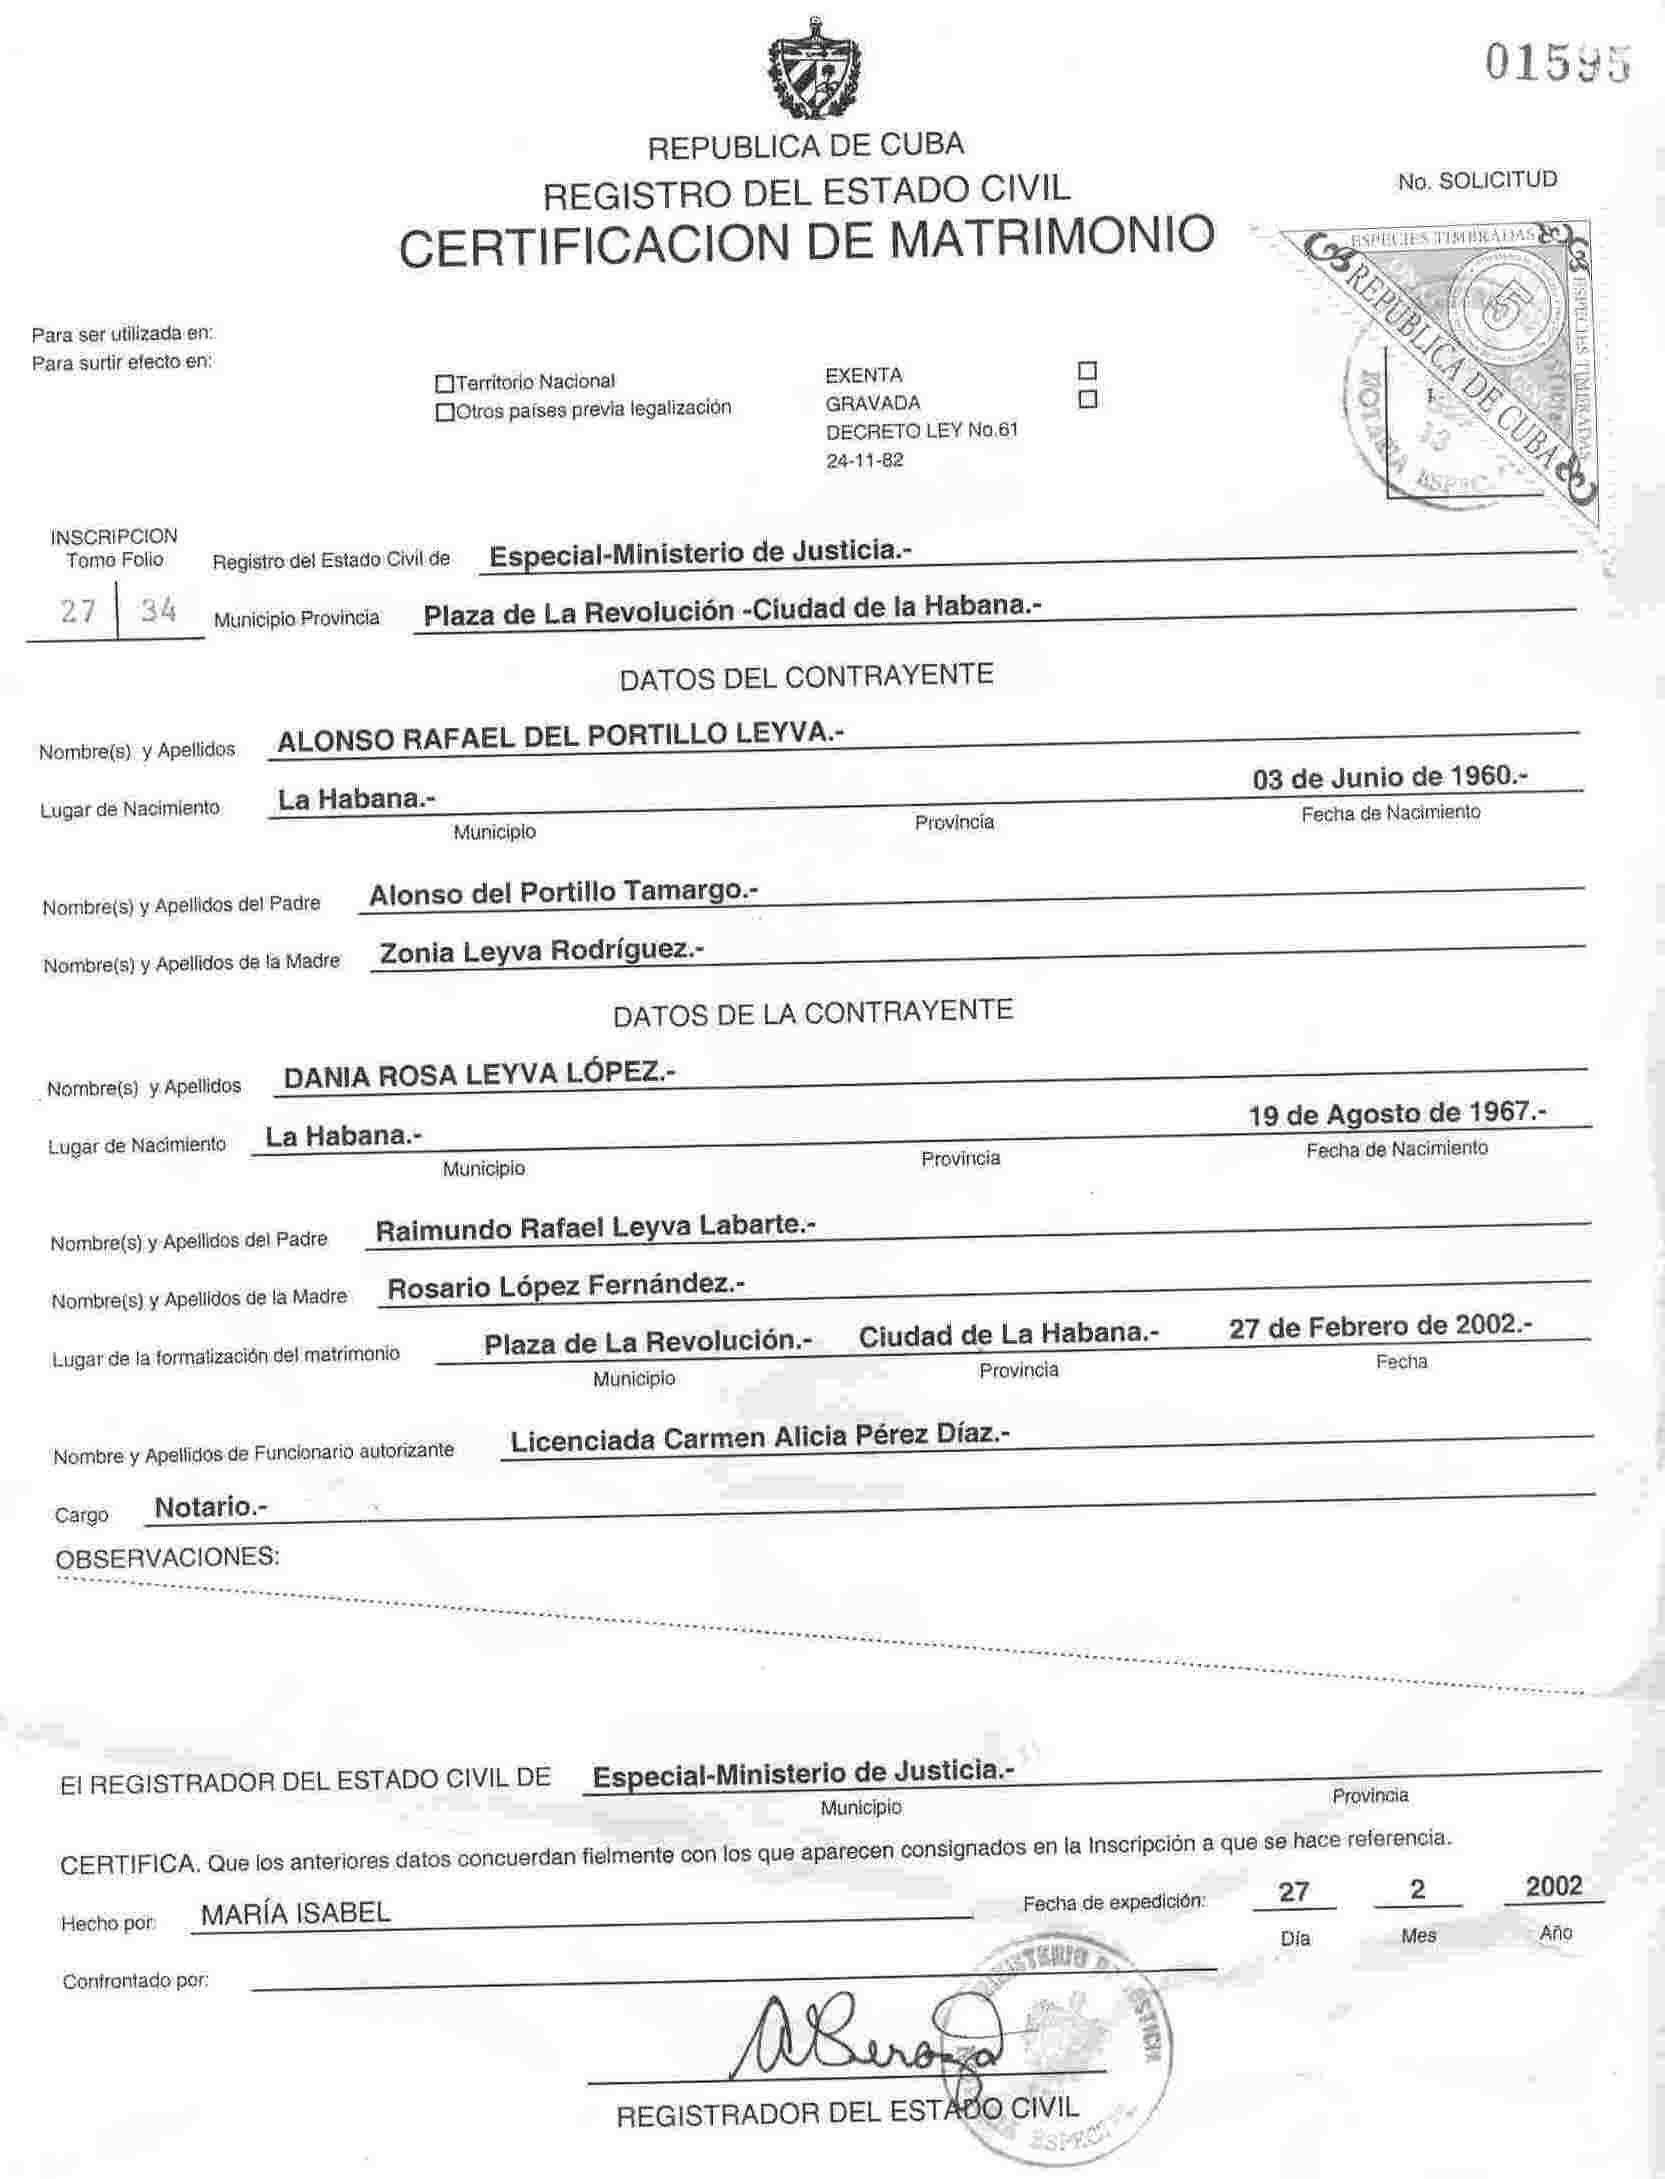 file alonso r del portillo y leyva cuban marriage certificate jpg